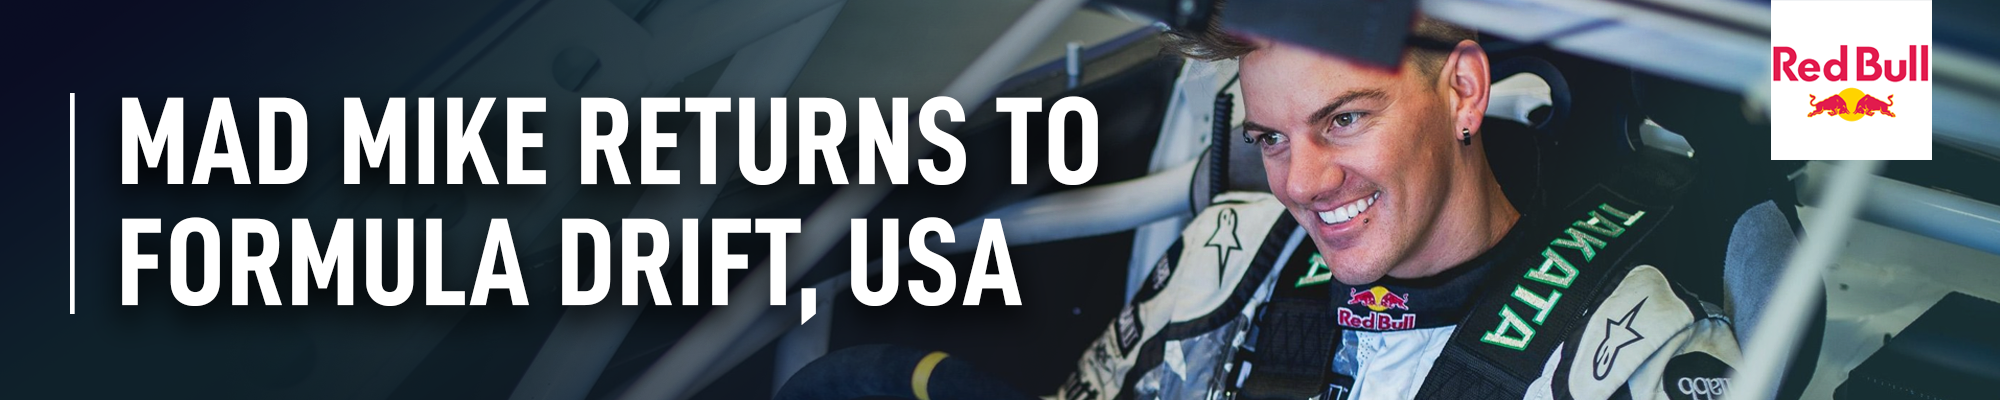 Red Bull: Mad Mike returns to Formula Drift, USA